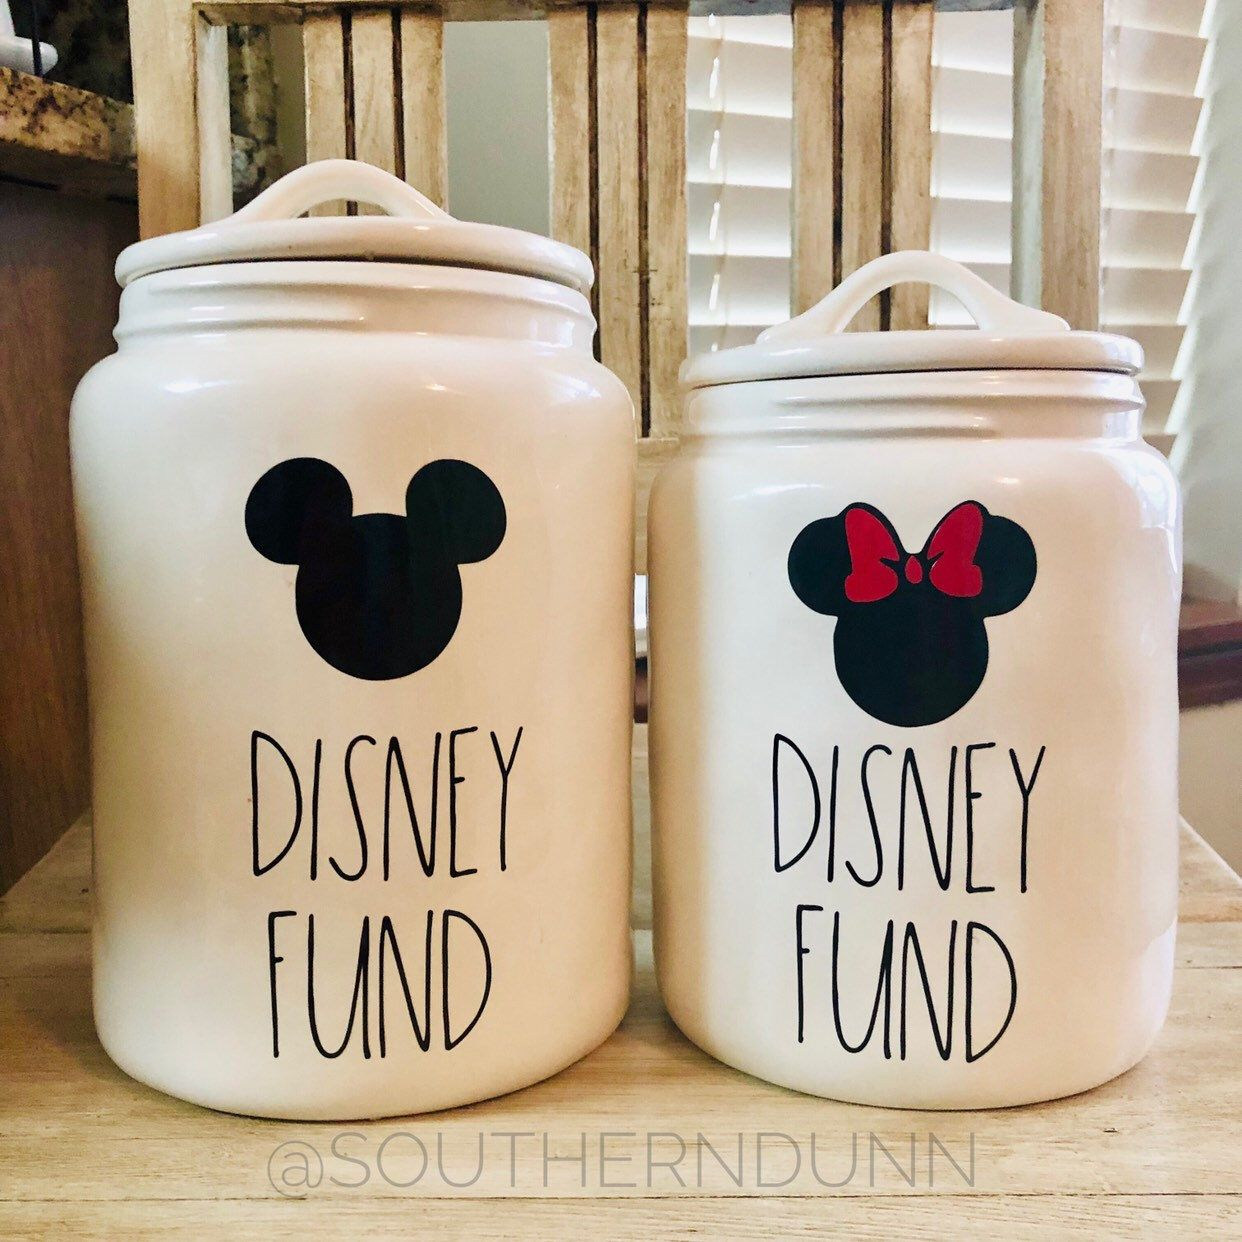 Rae Dunn Inspired Disney Fund Decal, Disney Fund Decal, Mickey Disney Fund, Minnie Disney Fund